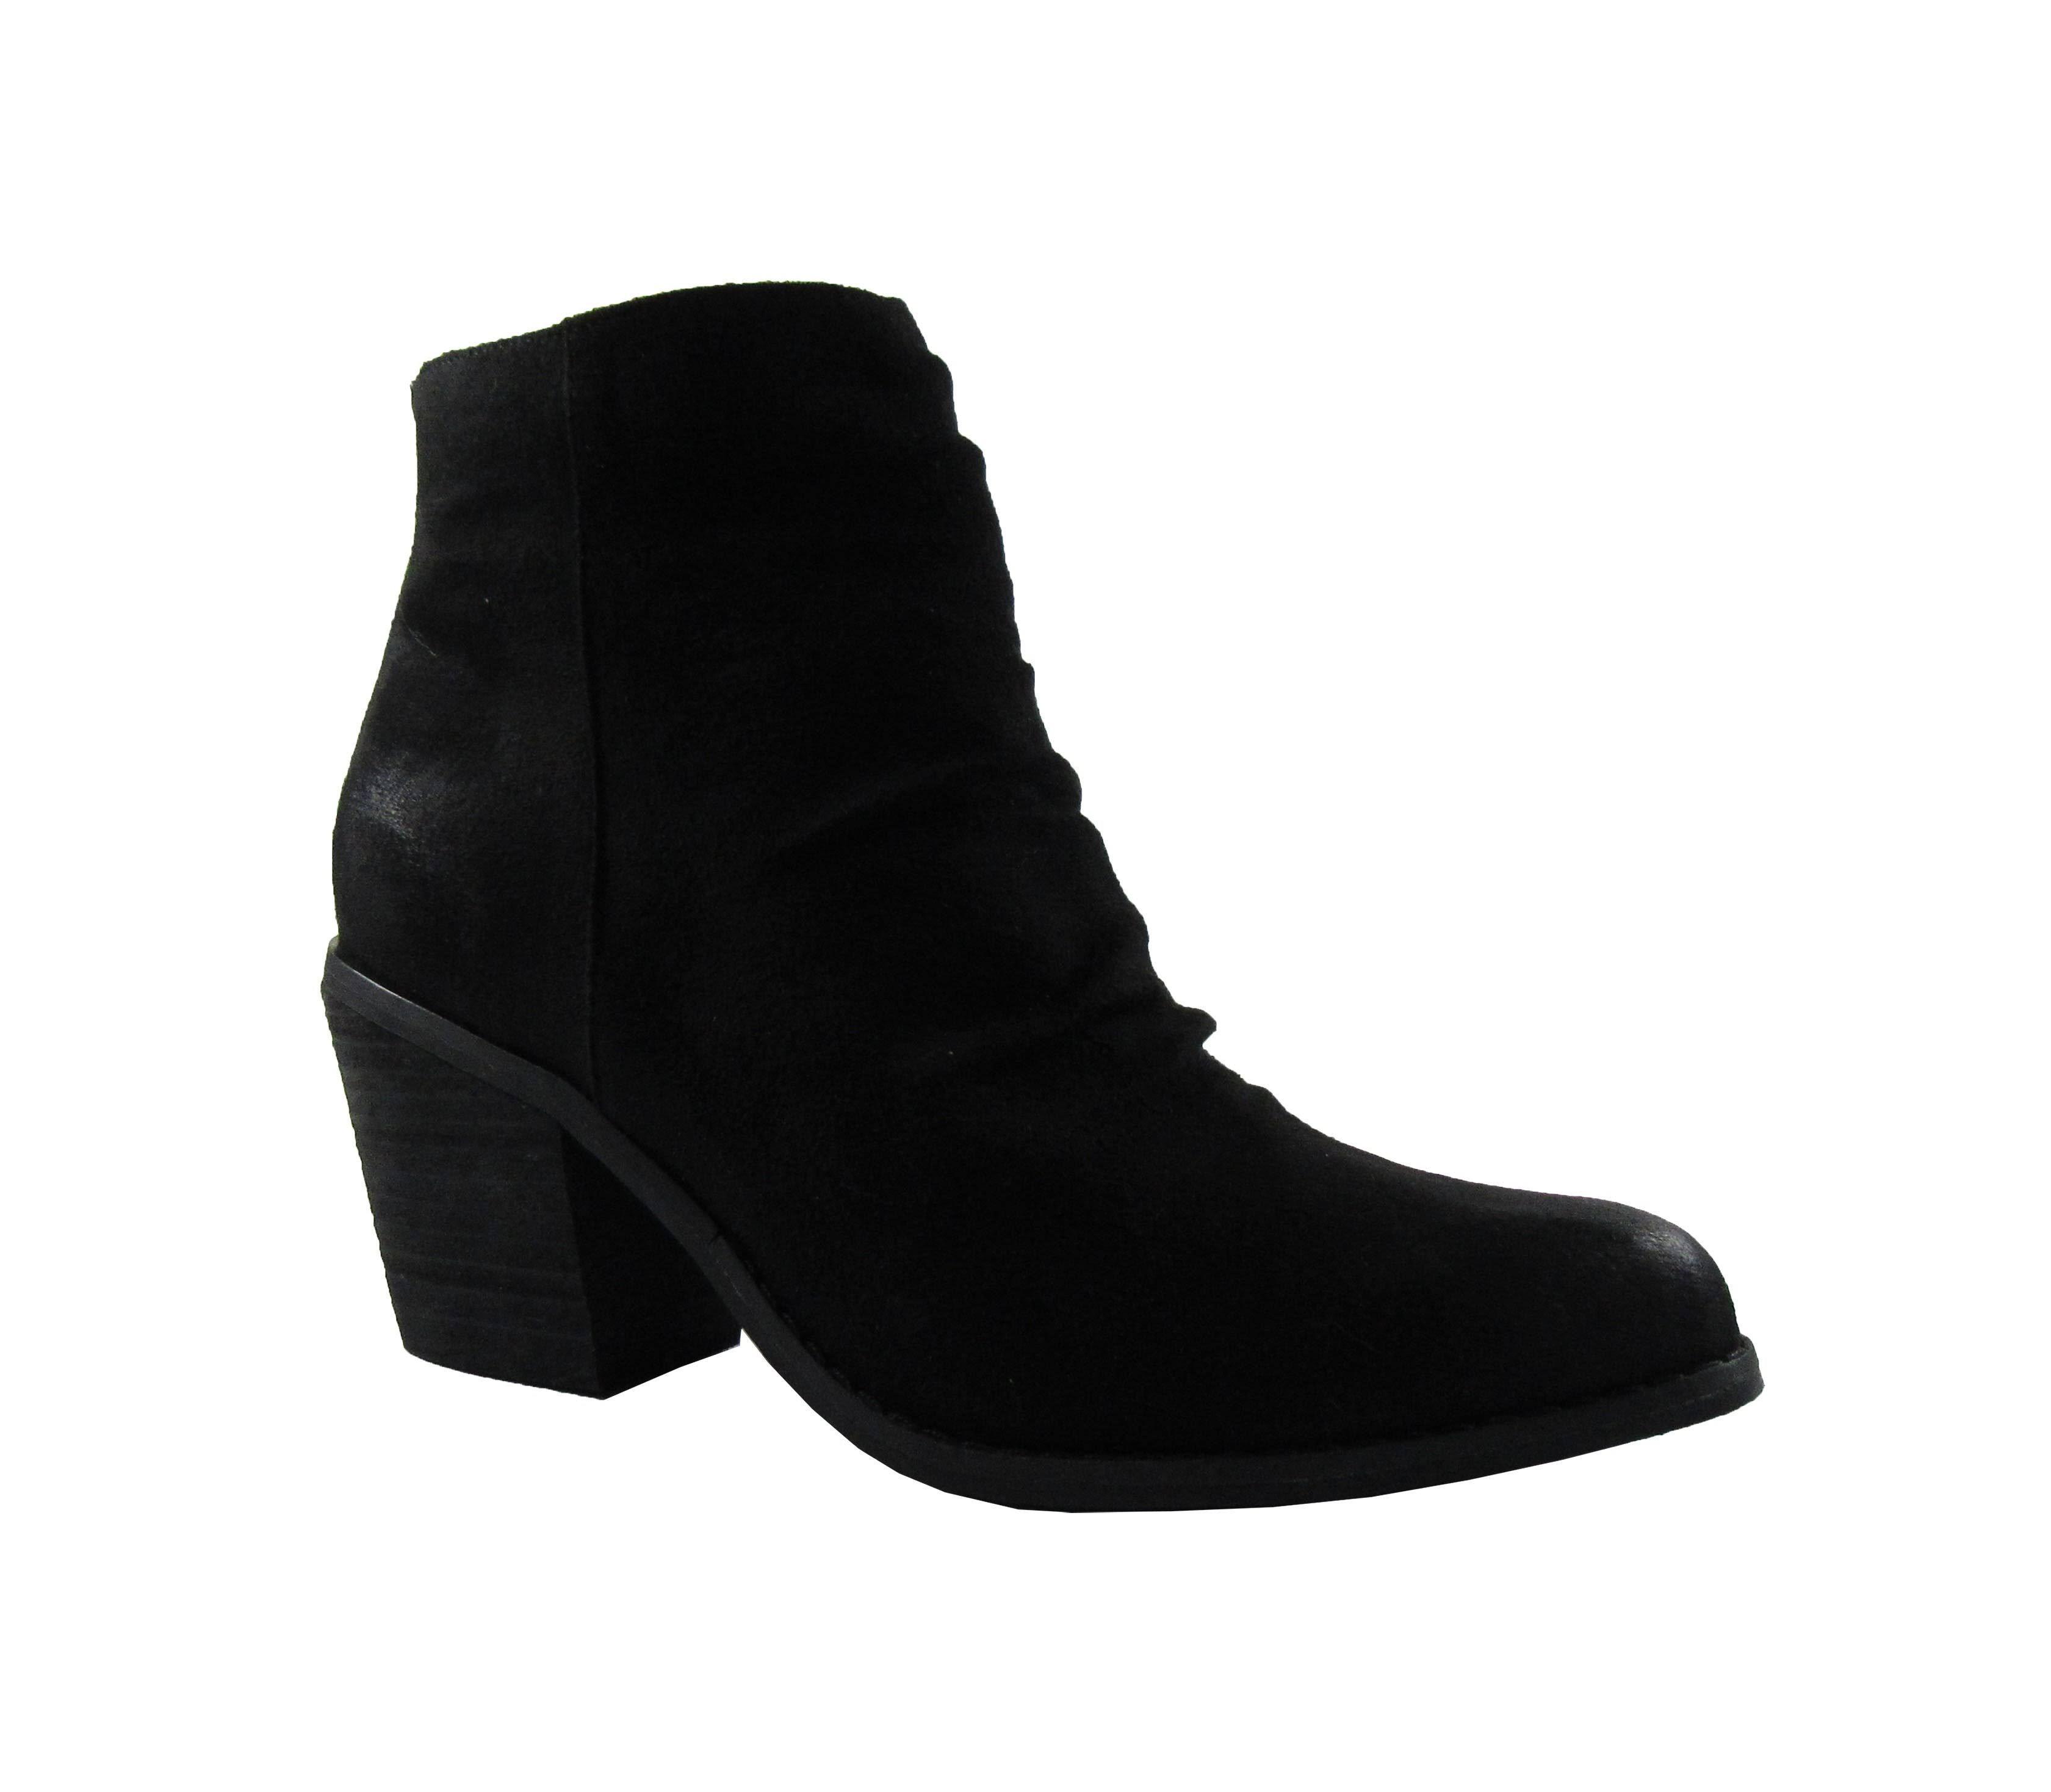 Not Rated Salta Women's Shoes Black : 7.5 M